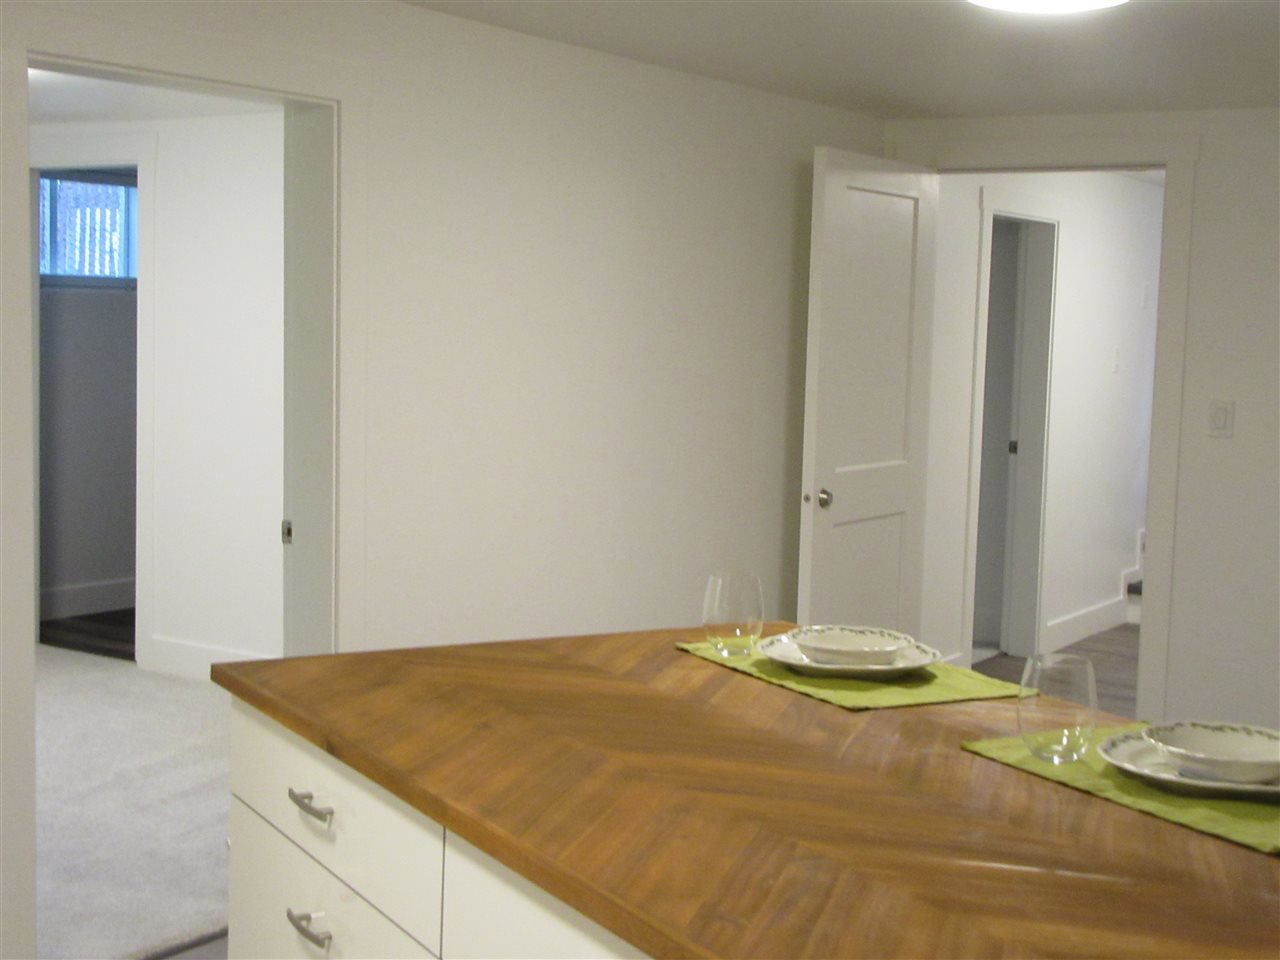 """Photo 20: Photos: 121 FREEMAN Street in Prince George: Nechako View House for sale in """"NECHAKO"""" (PG City Central (Zone 72))  : MLS®# R2493268"""